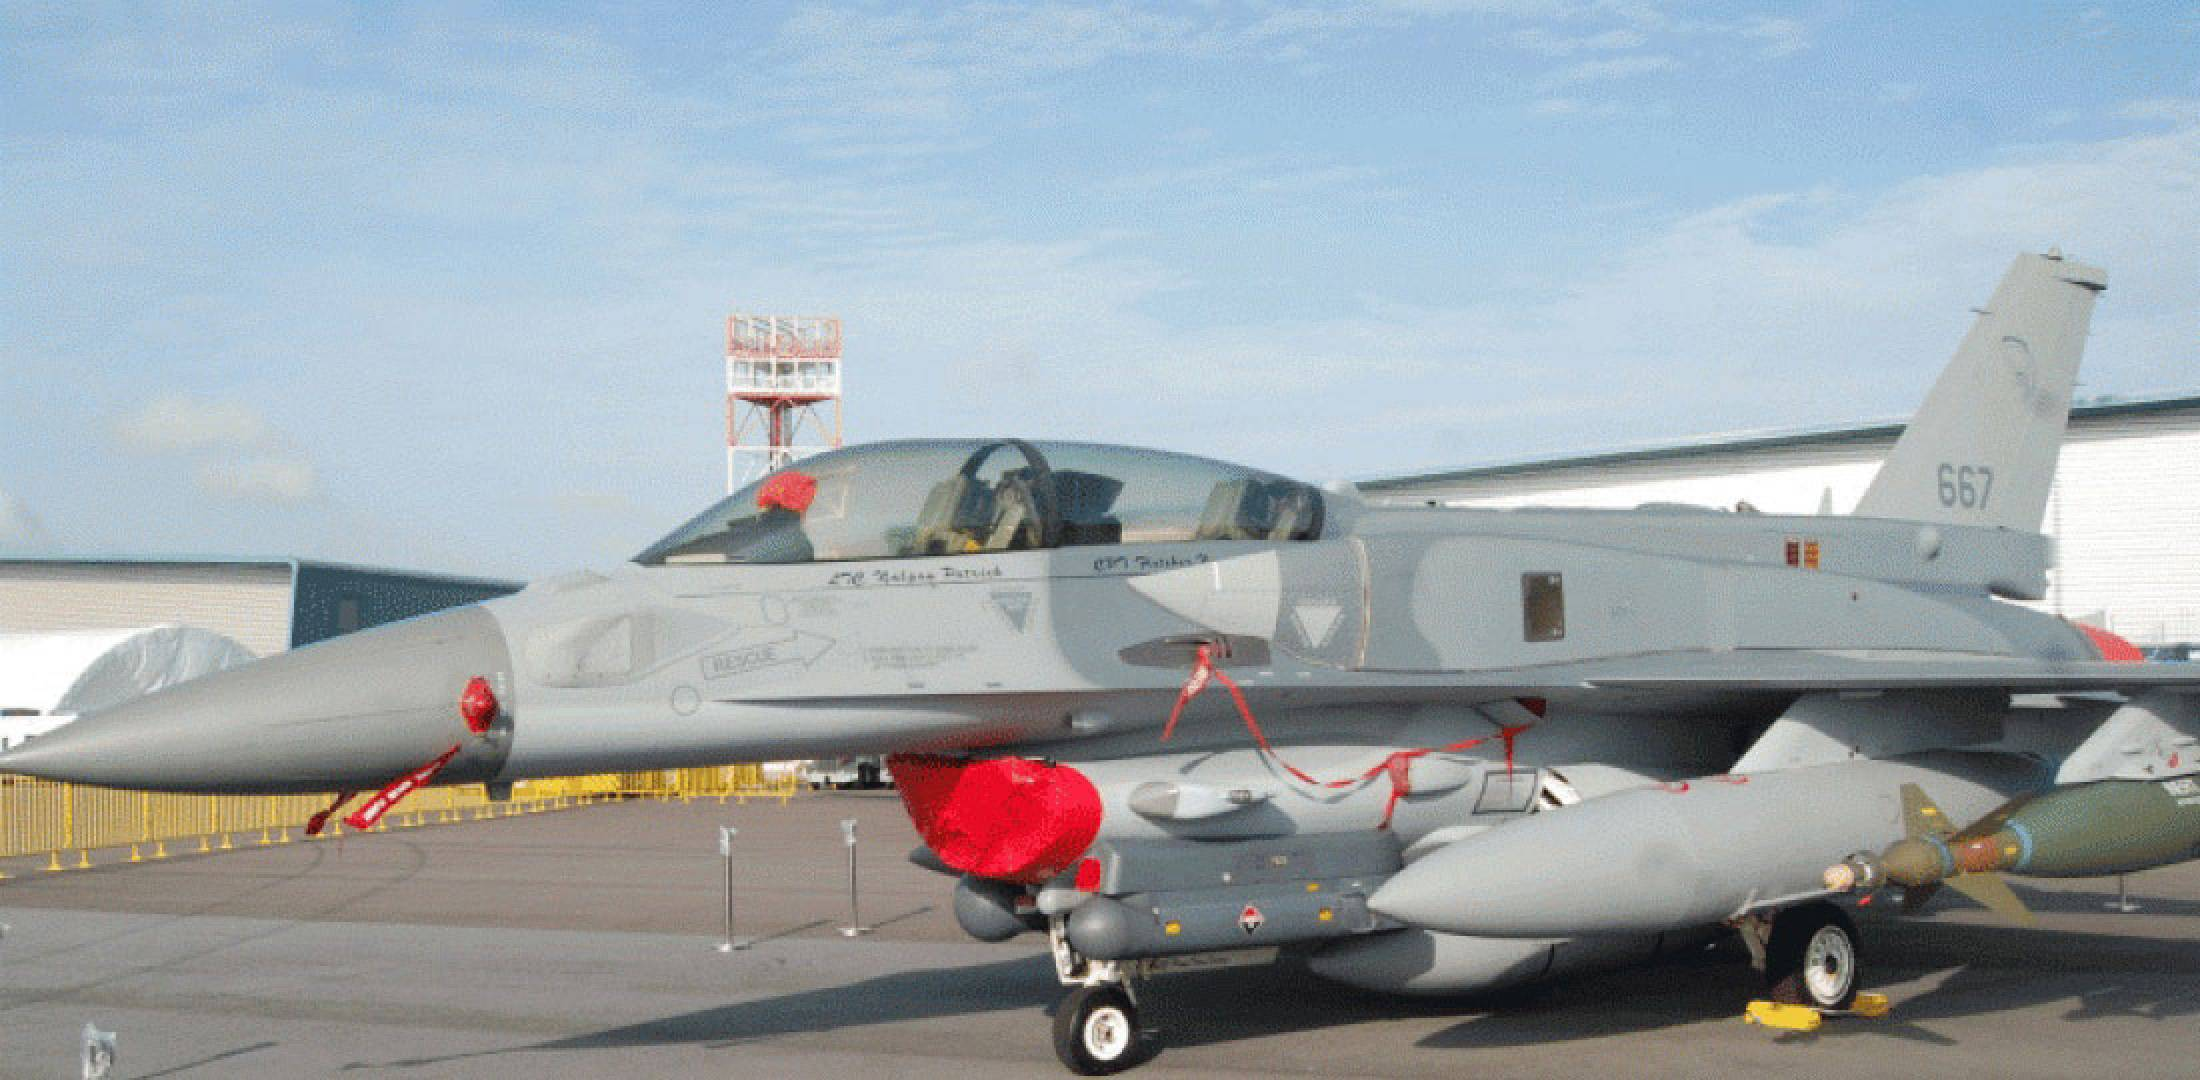 F-16D-Plus on static display